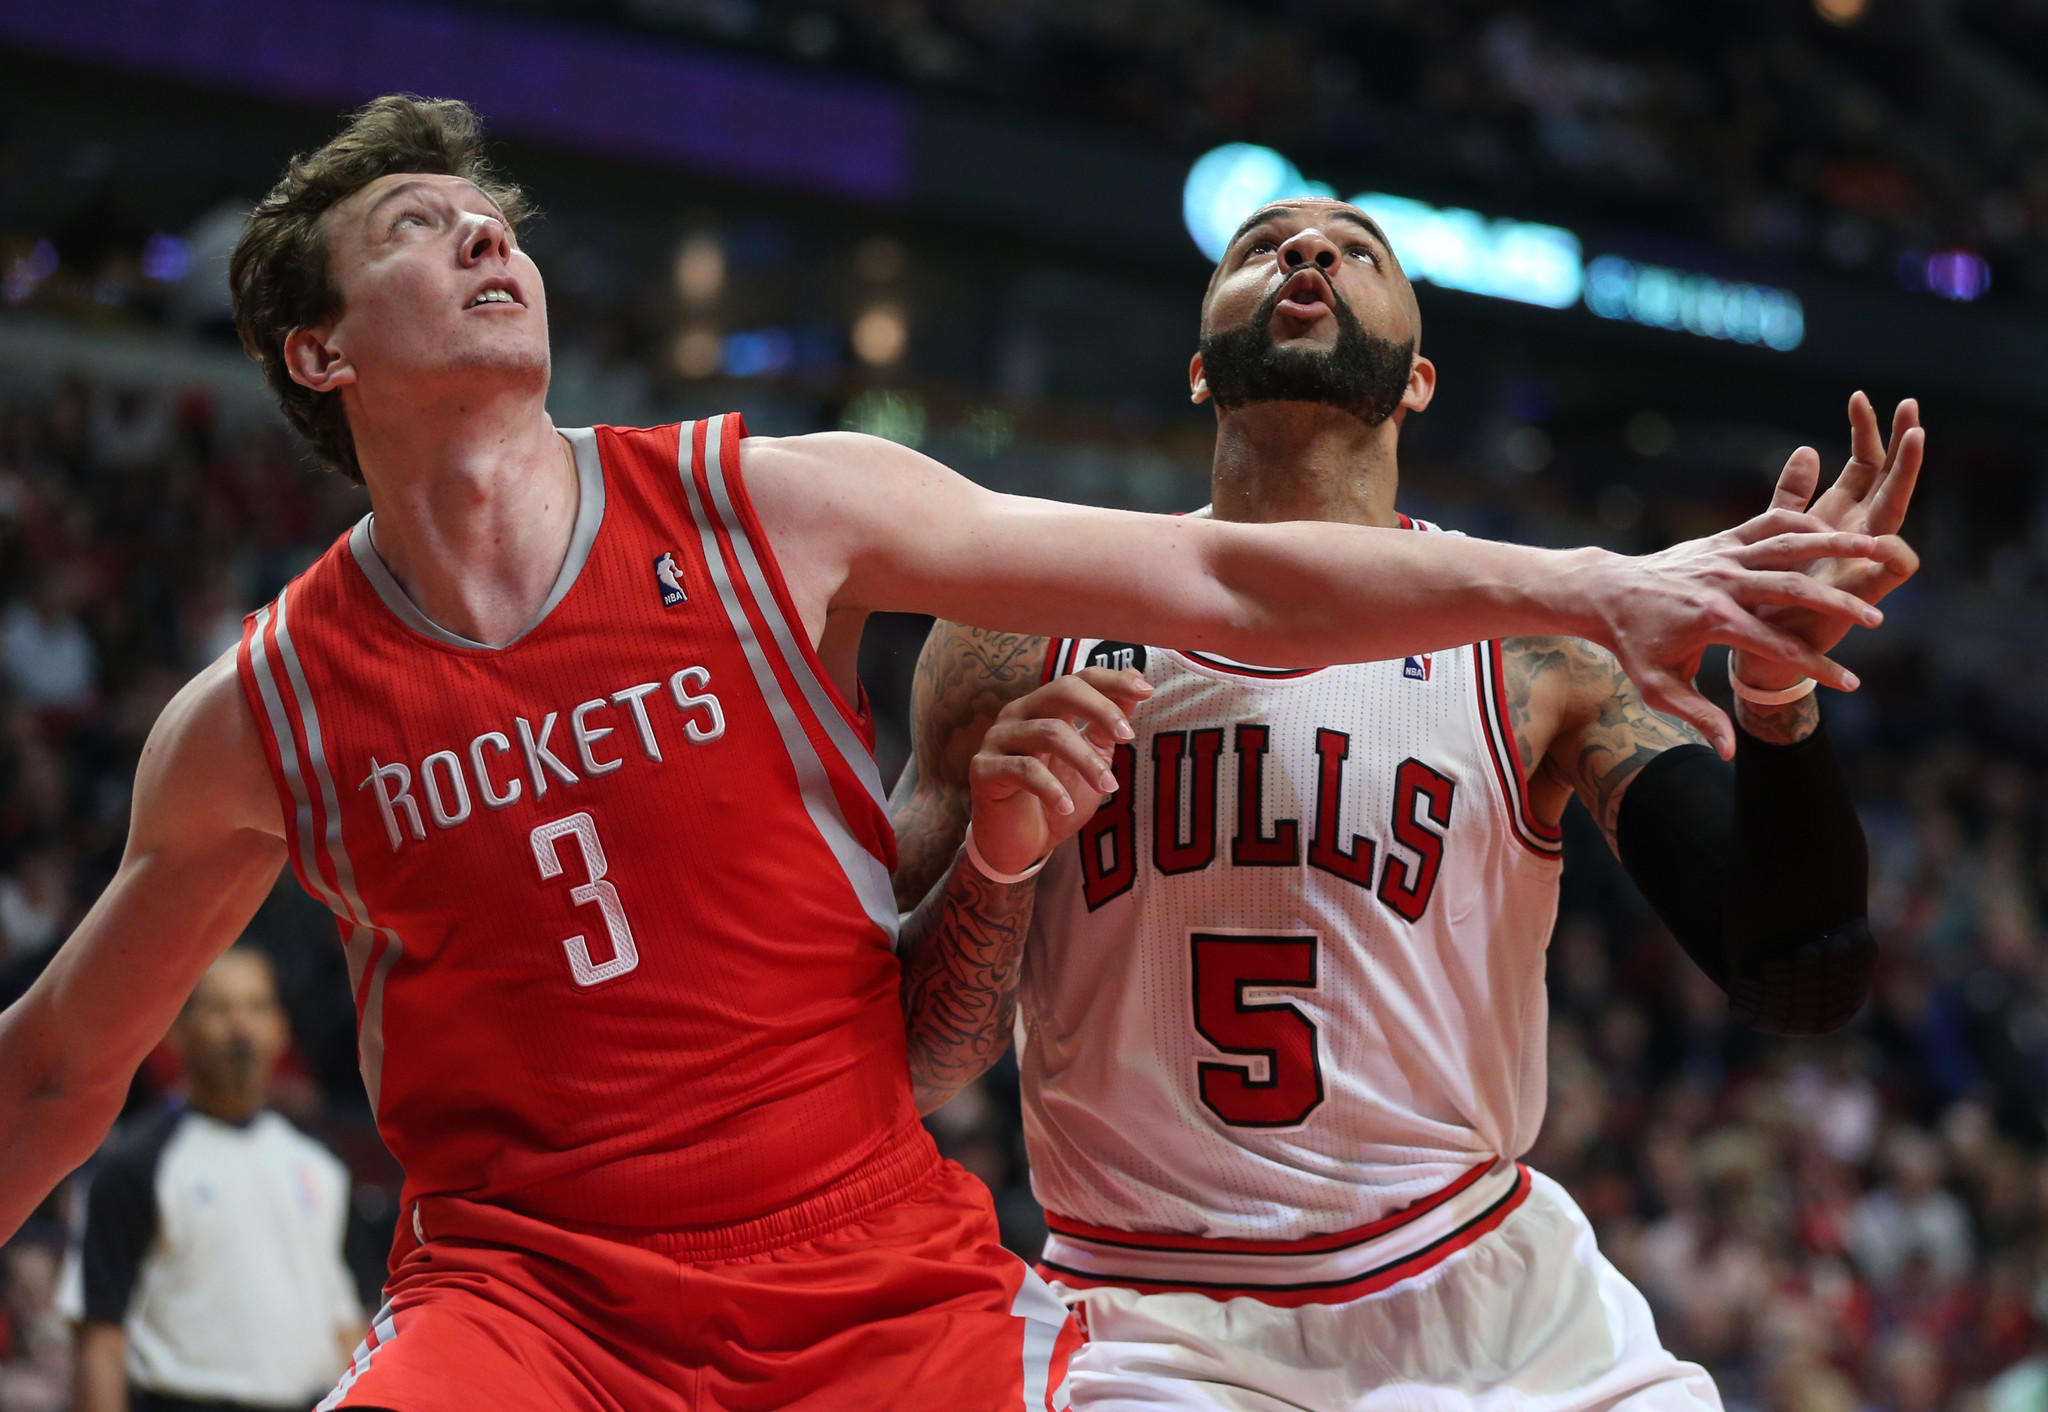 The Rockets' Omer Asik and the Bulls' Carlos Boozer fight for position on a rebound in the first half at the United Center.